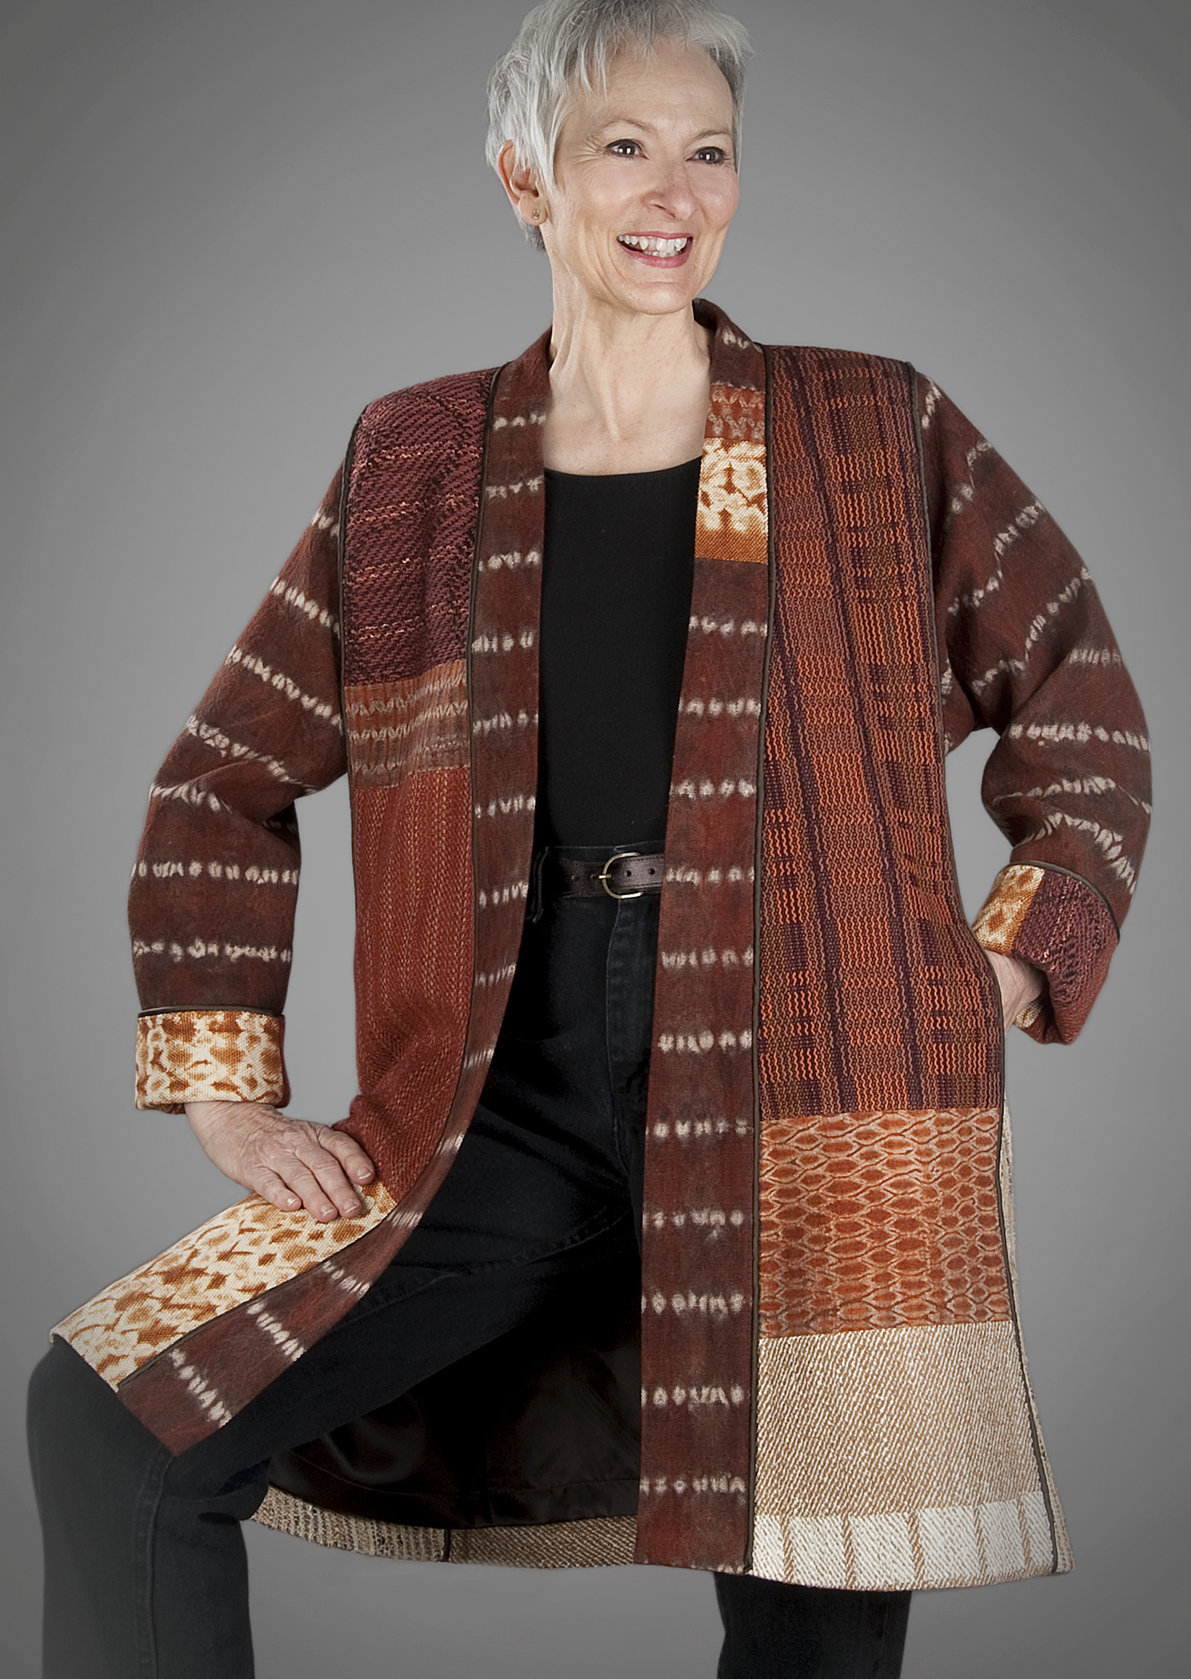 Liz Spear Hand Woven, Art-To-Wear, Clothing.jpg